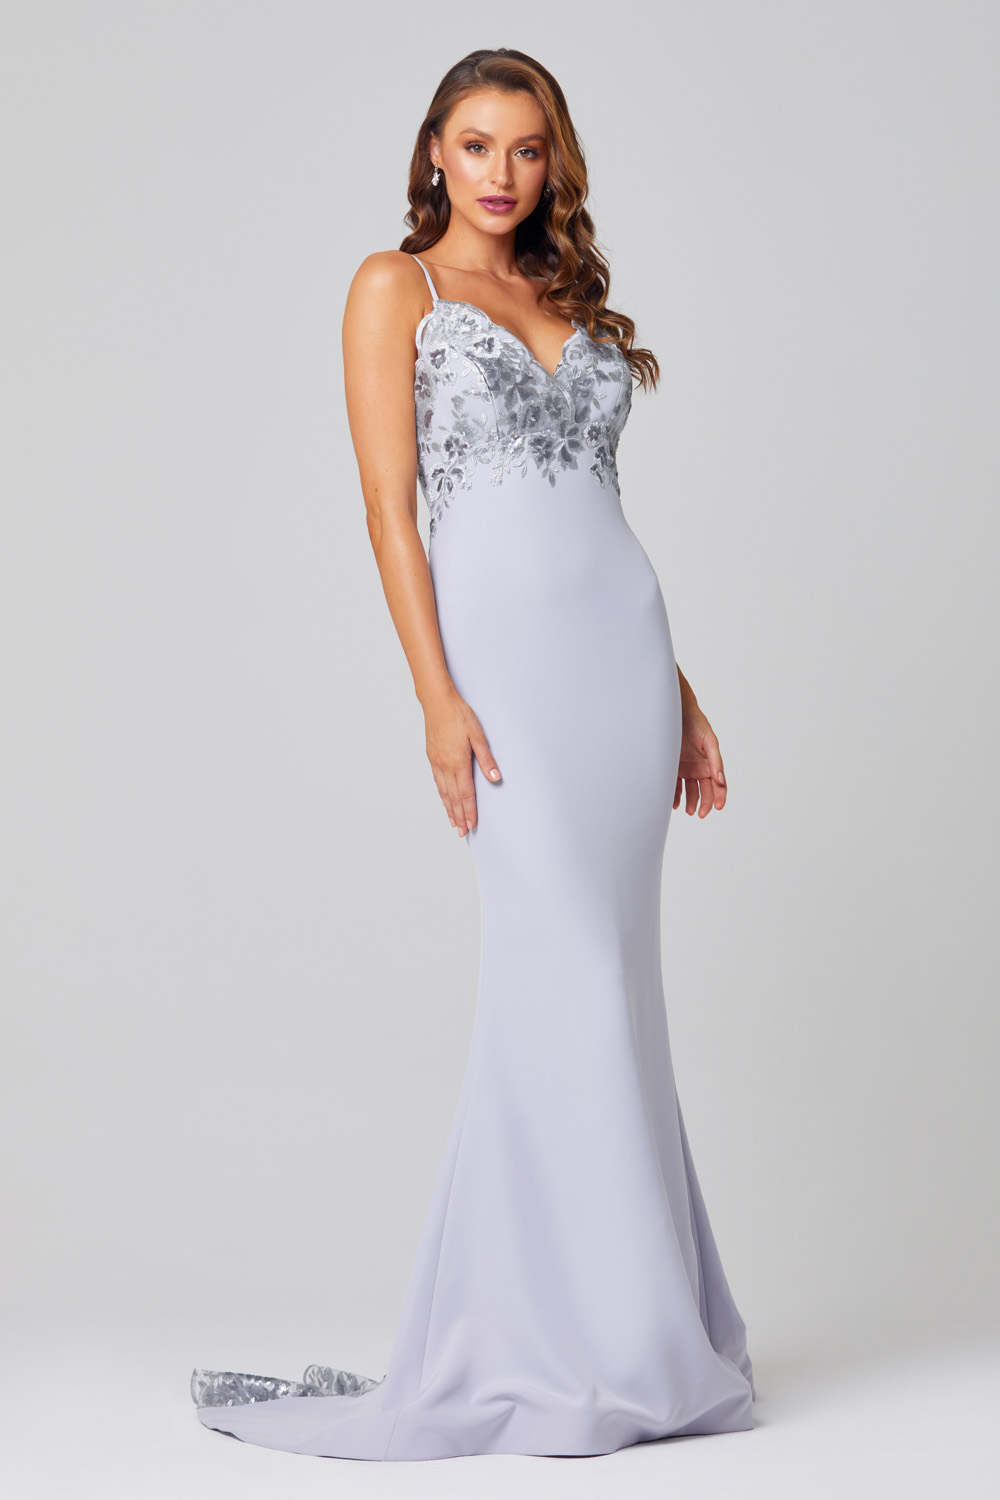 Pippa Low Back Sequin Lace Formal Dress - PO888 side